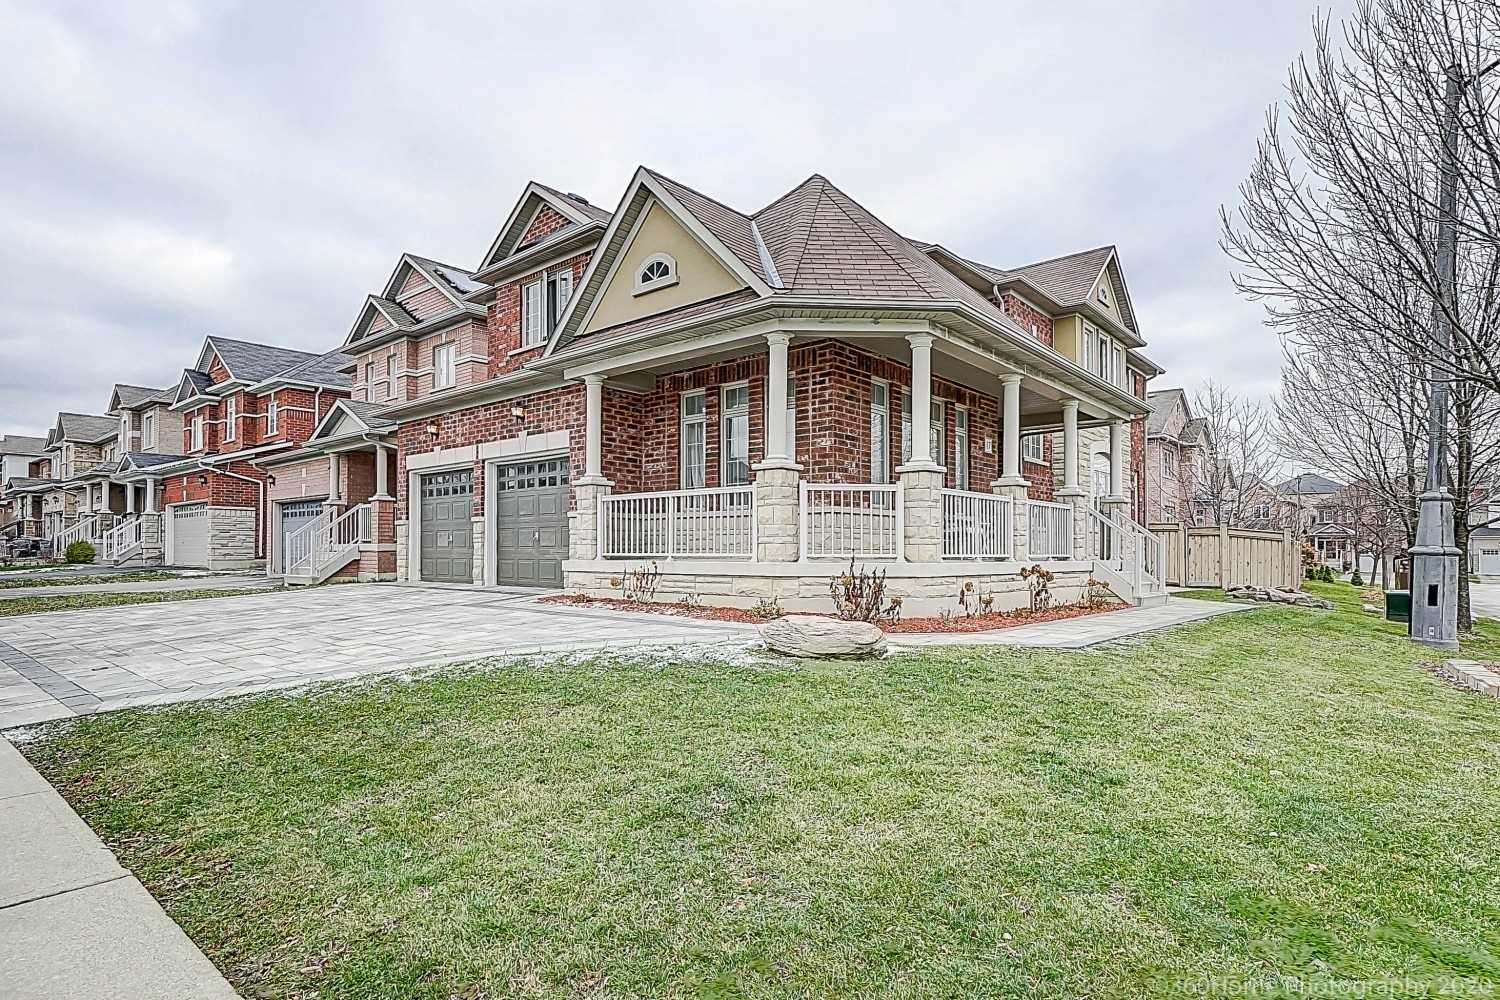 For Sale: 17 Delattaye Avenue, Aurora, ON | 4 Bed, 4 Bath House for $1199999.00. See 22 photos!